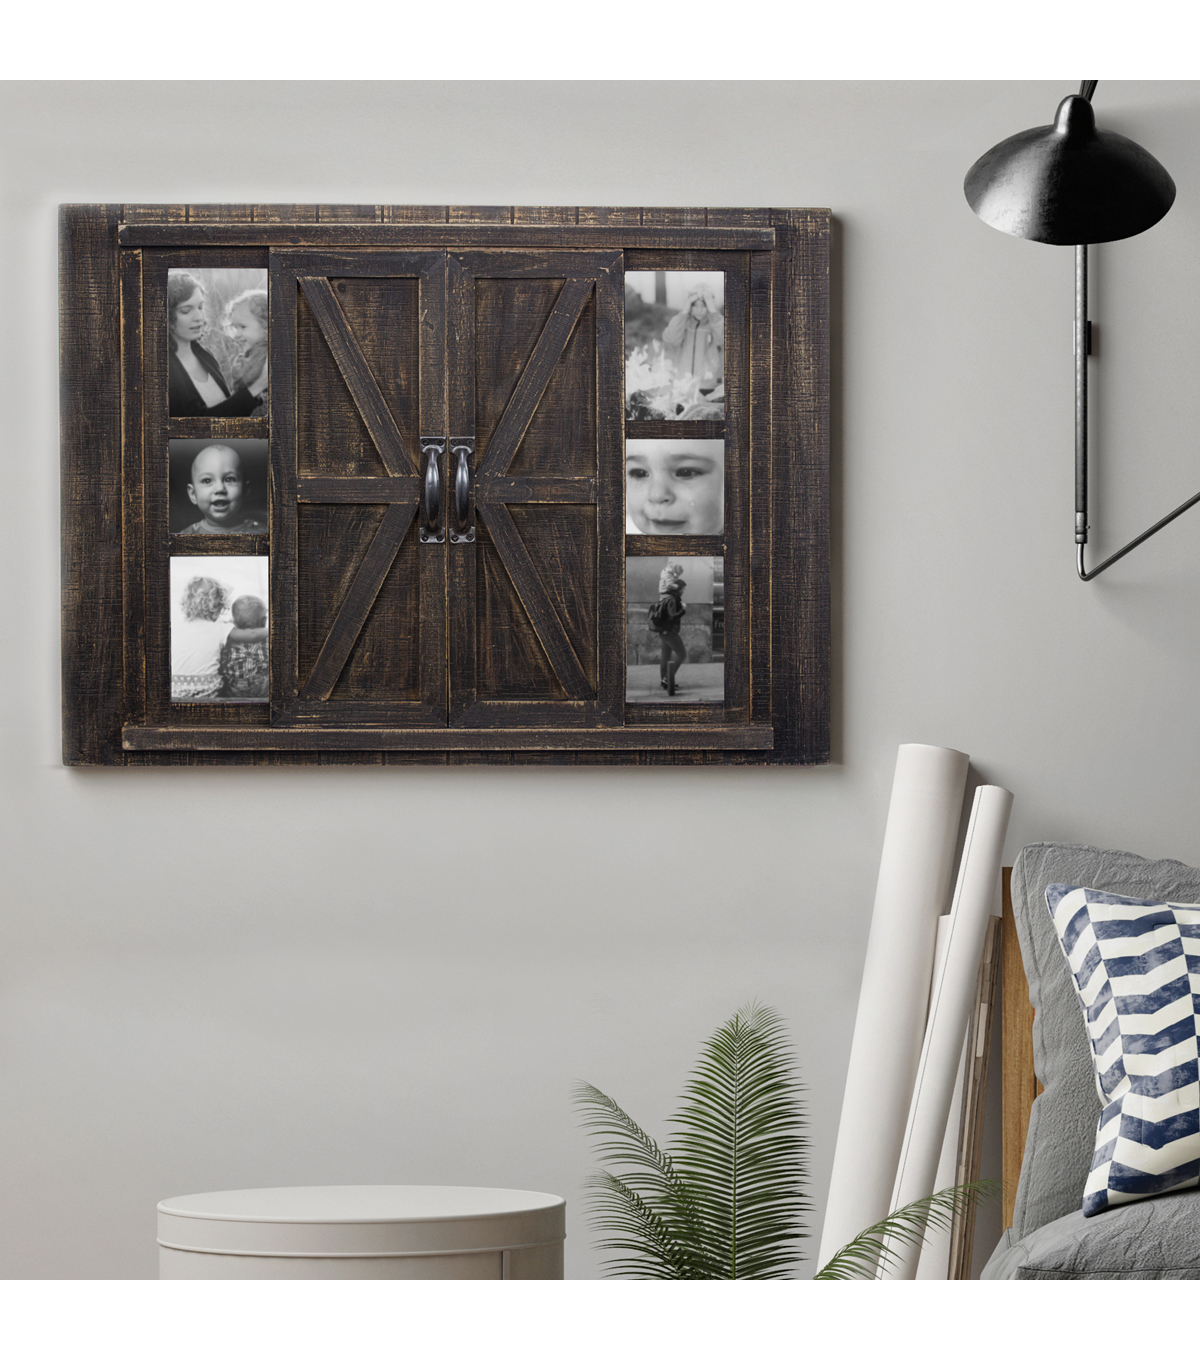 Furniture Finds Rustic Barn Door Picture Frame with Mirror